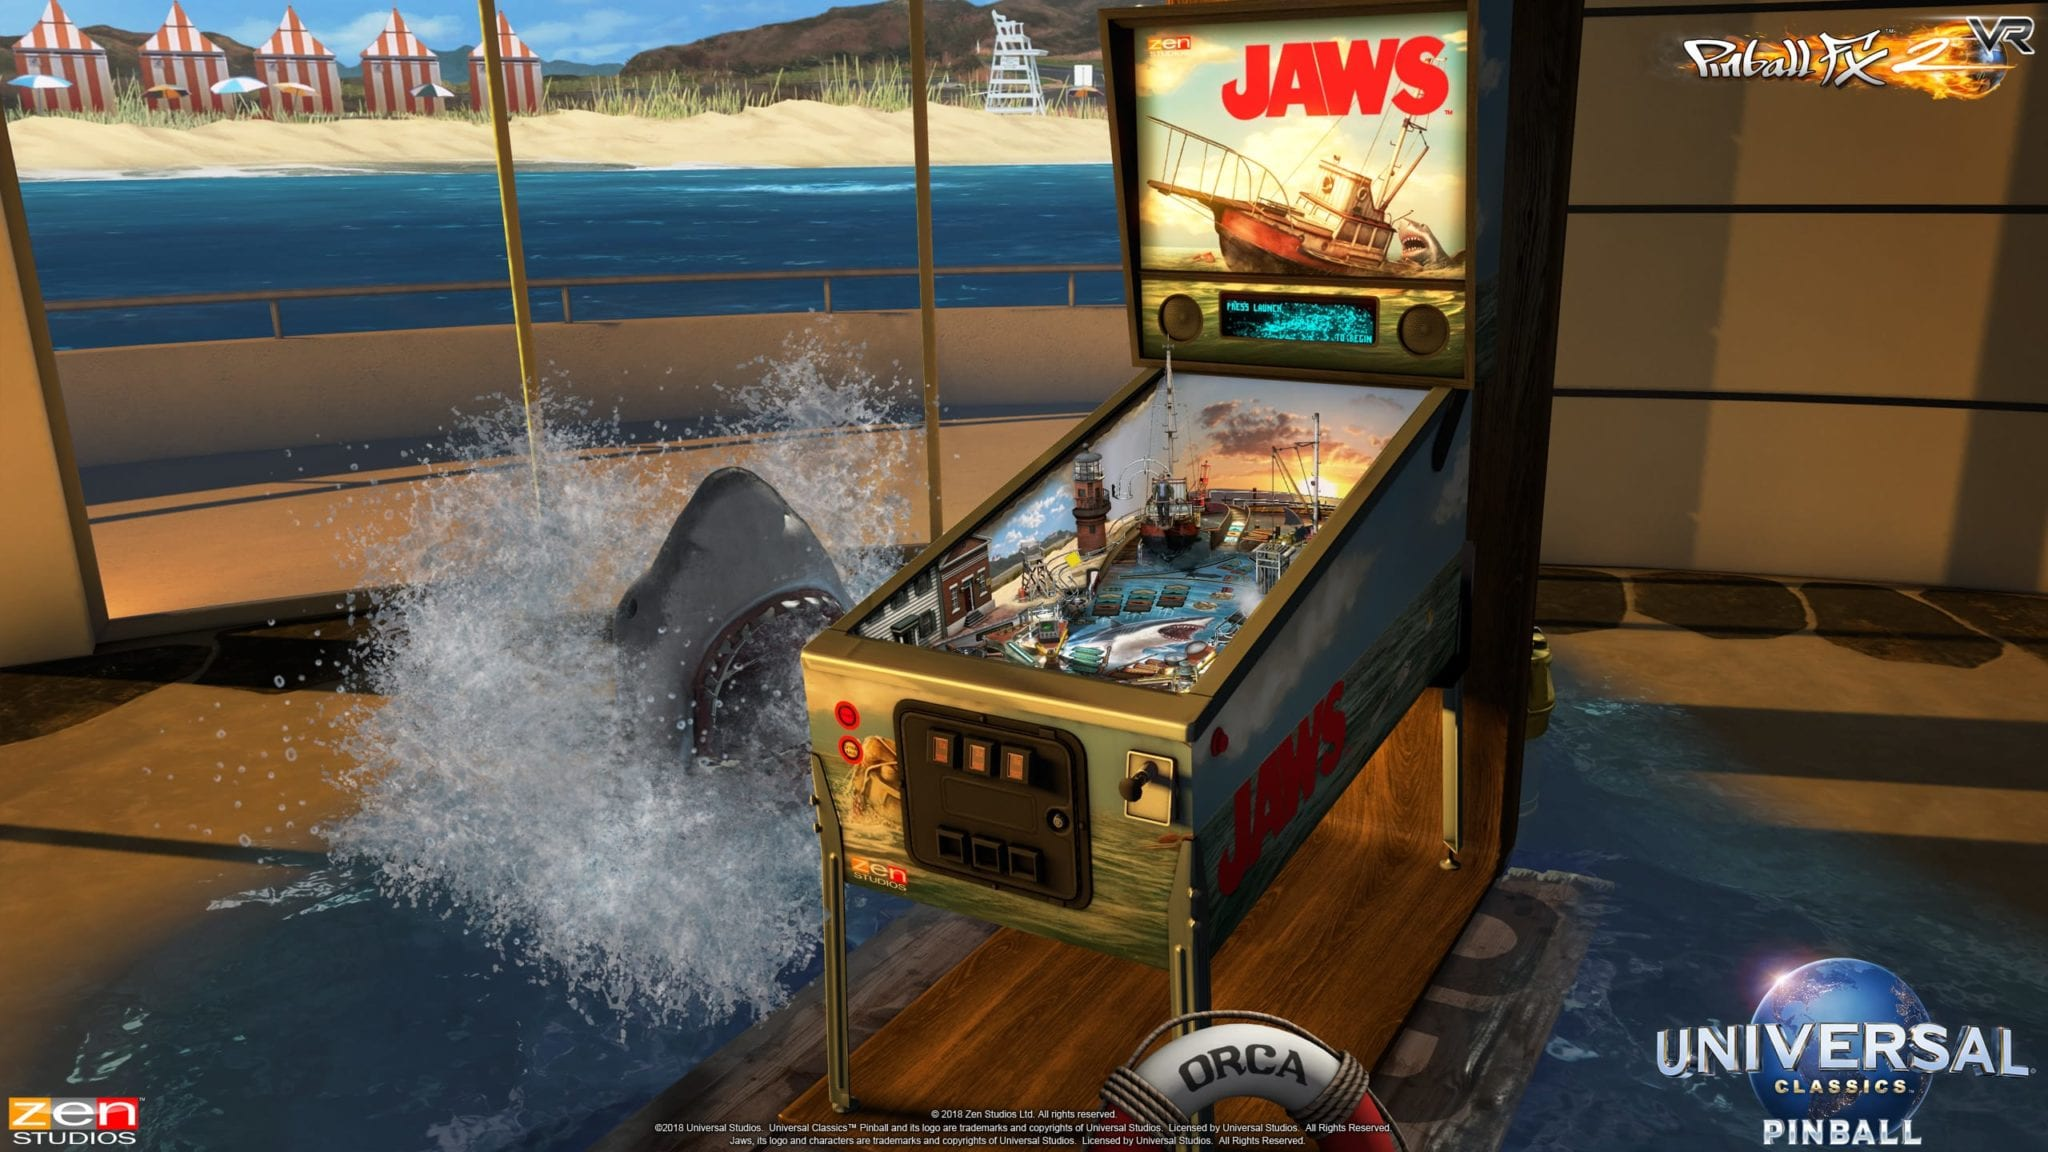 Universal Classics Pinball brings E T , Jaws, and Back to the Future